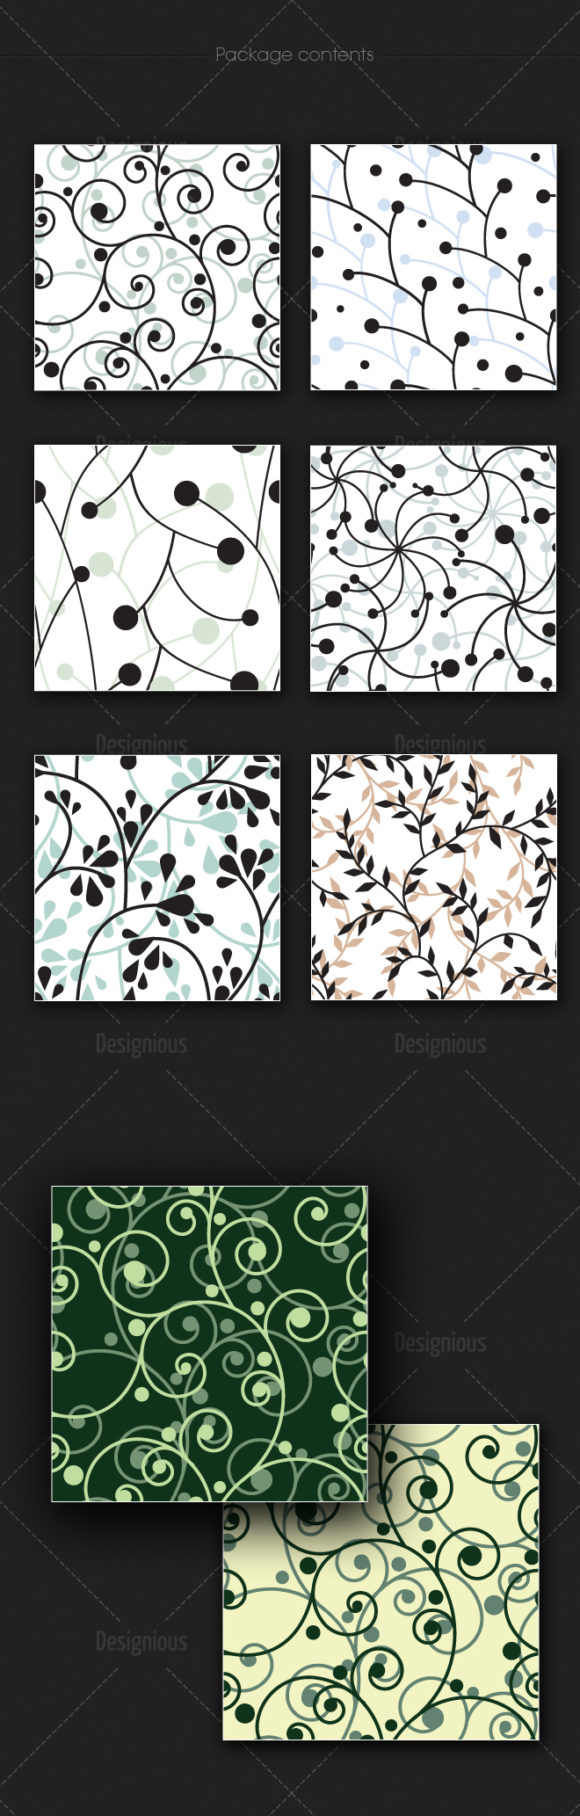 Seamless Patterns Vector Pack 176 6